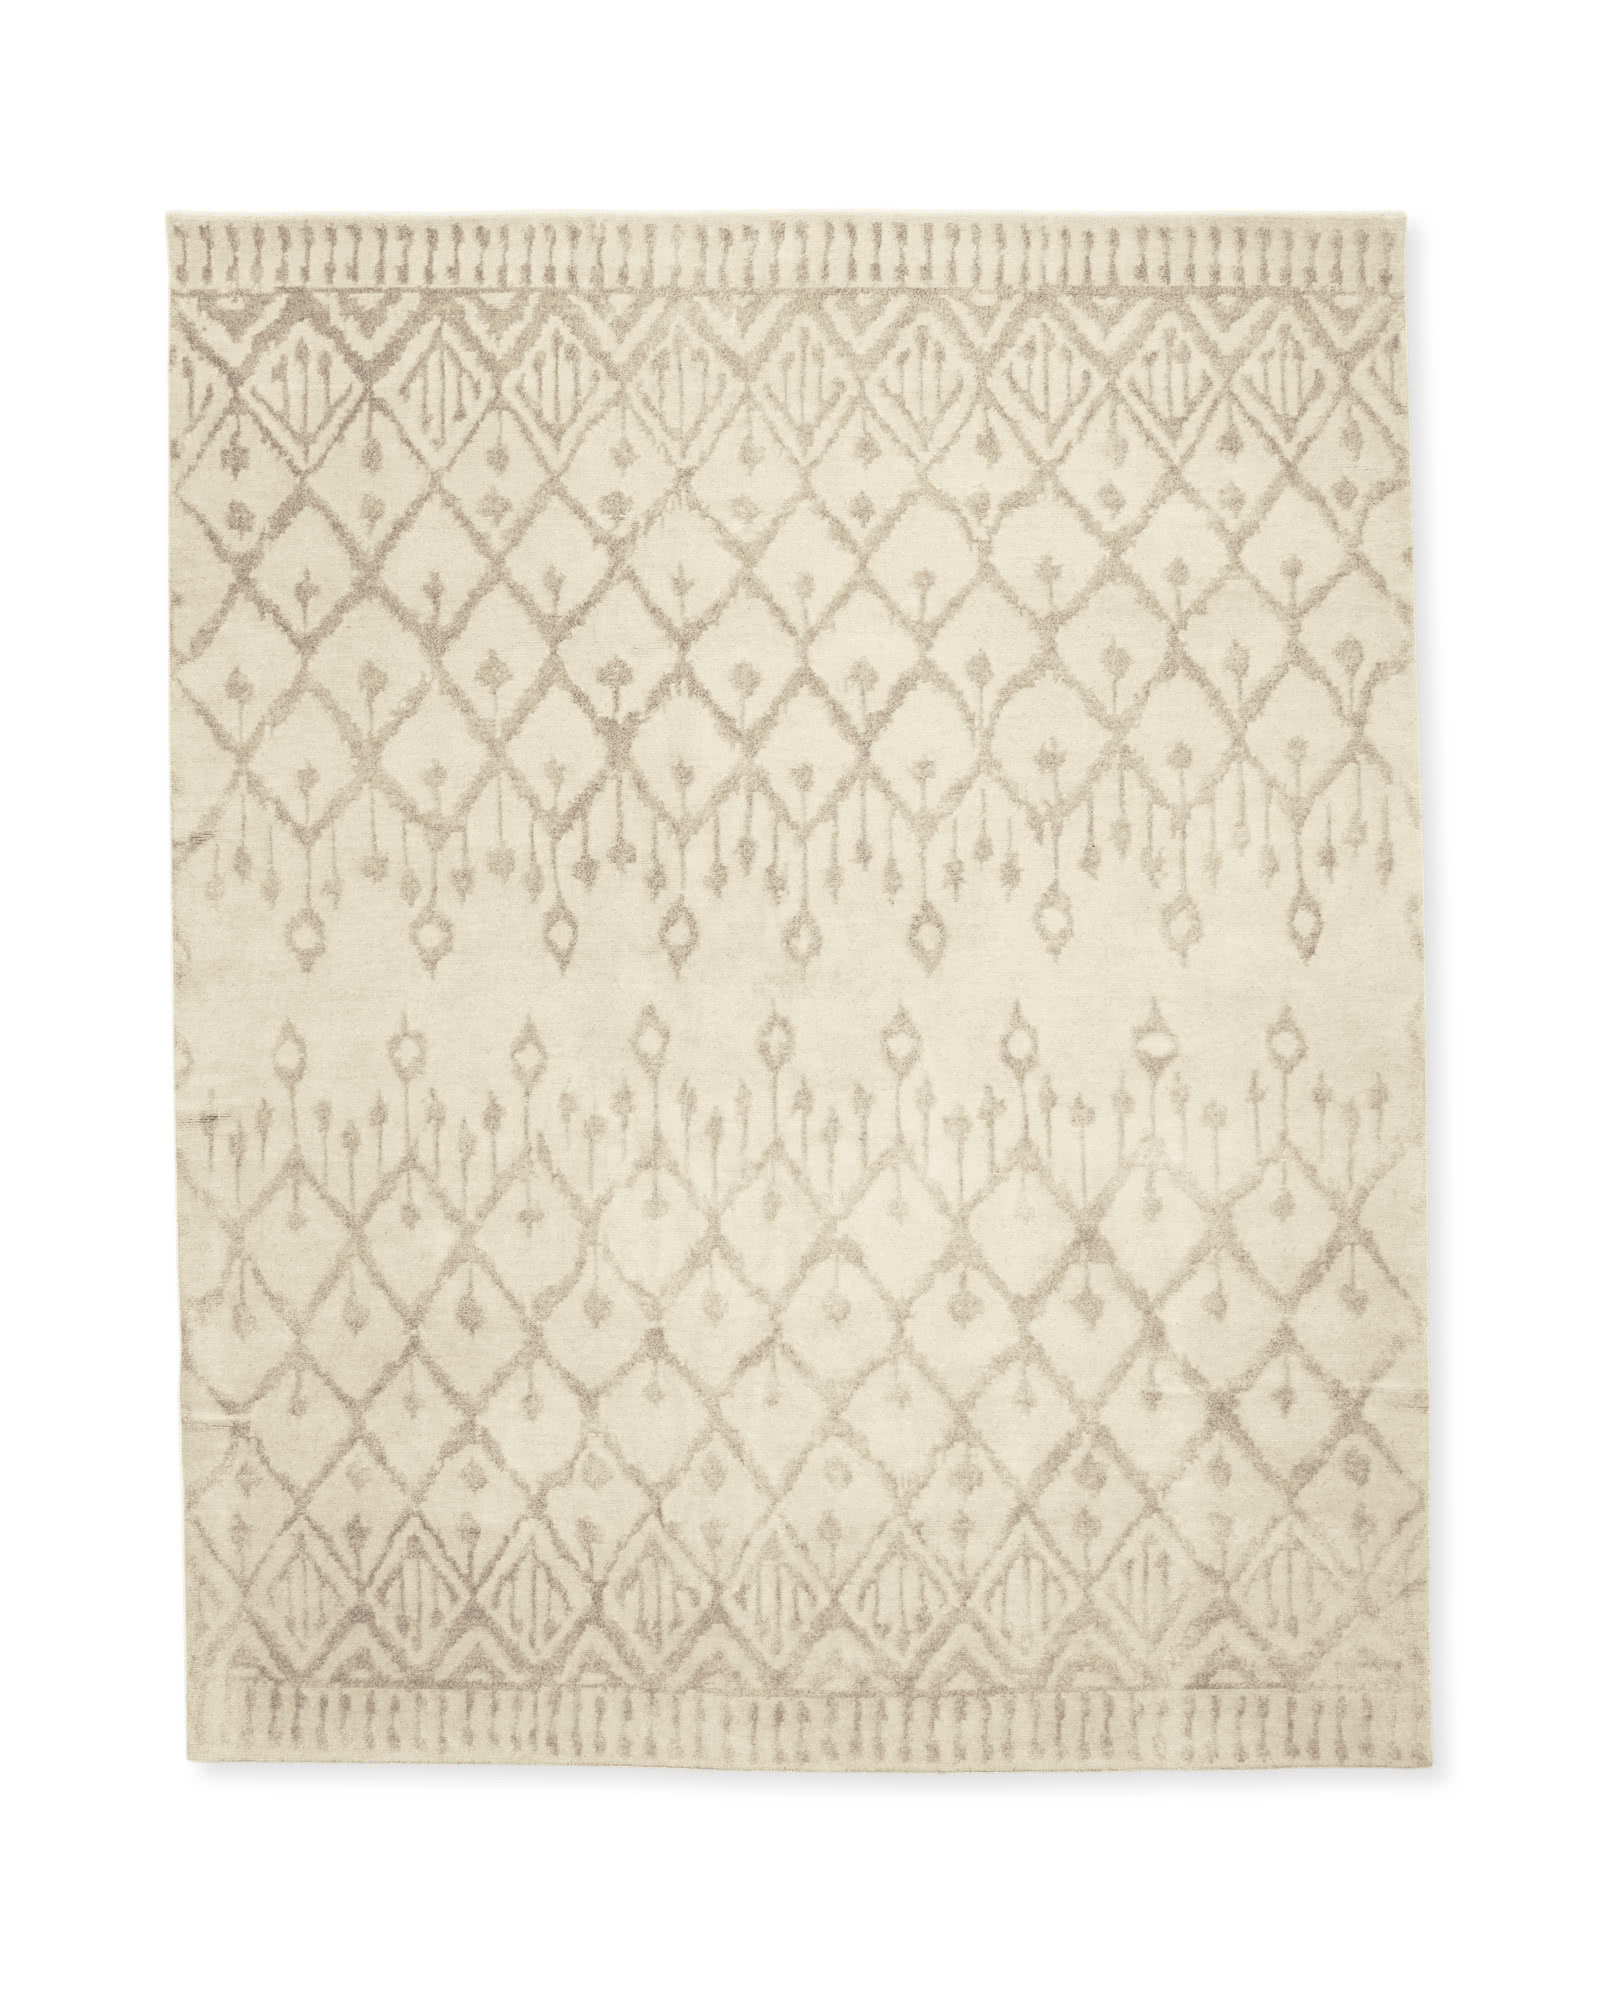 Milan Hand-Knotted Rug, Sand